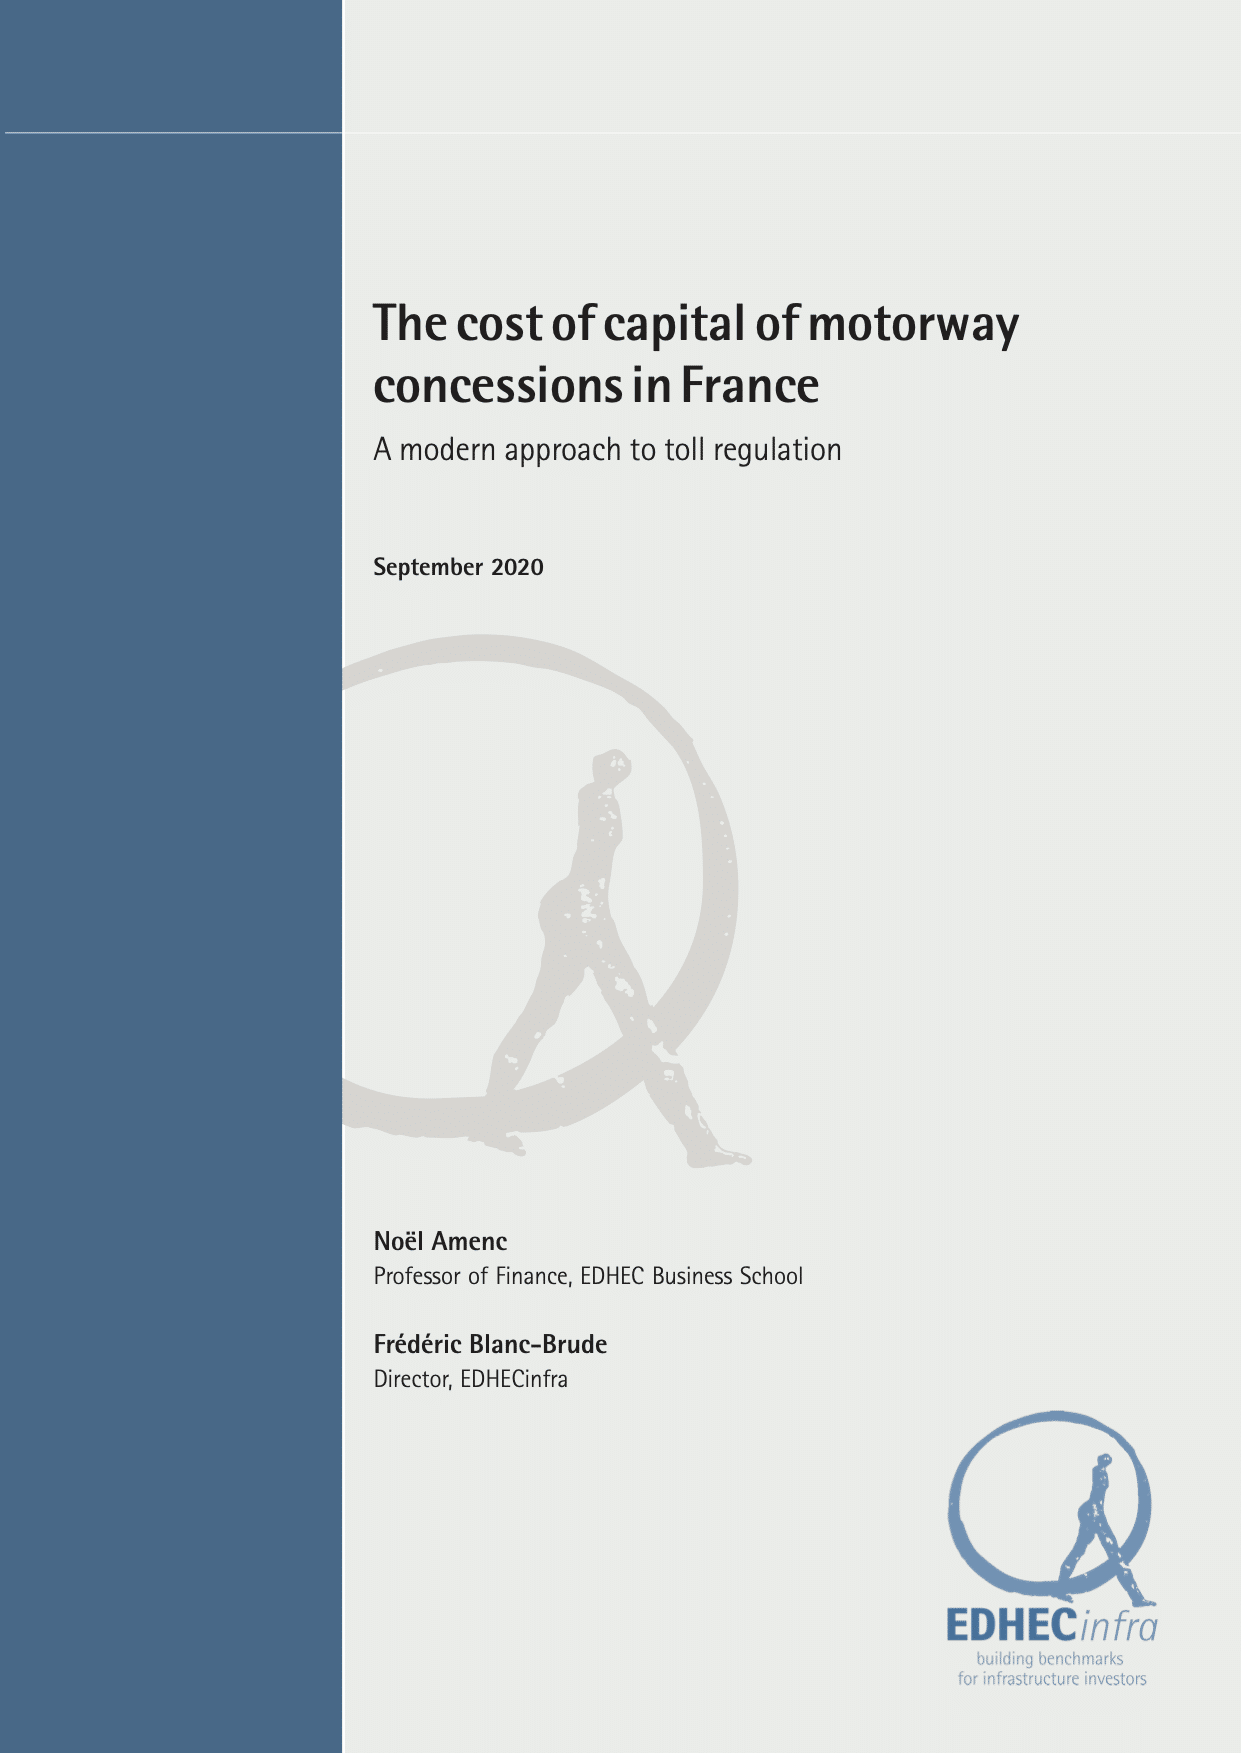 The cost of capital of motorway concessions in France – A modern approach to toll regulation